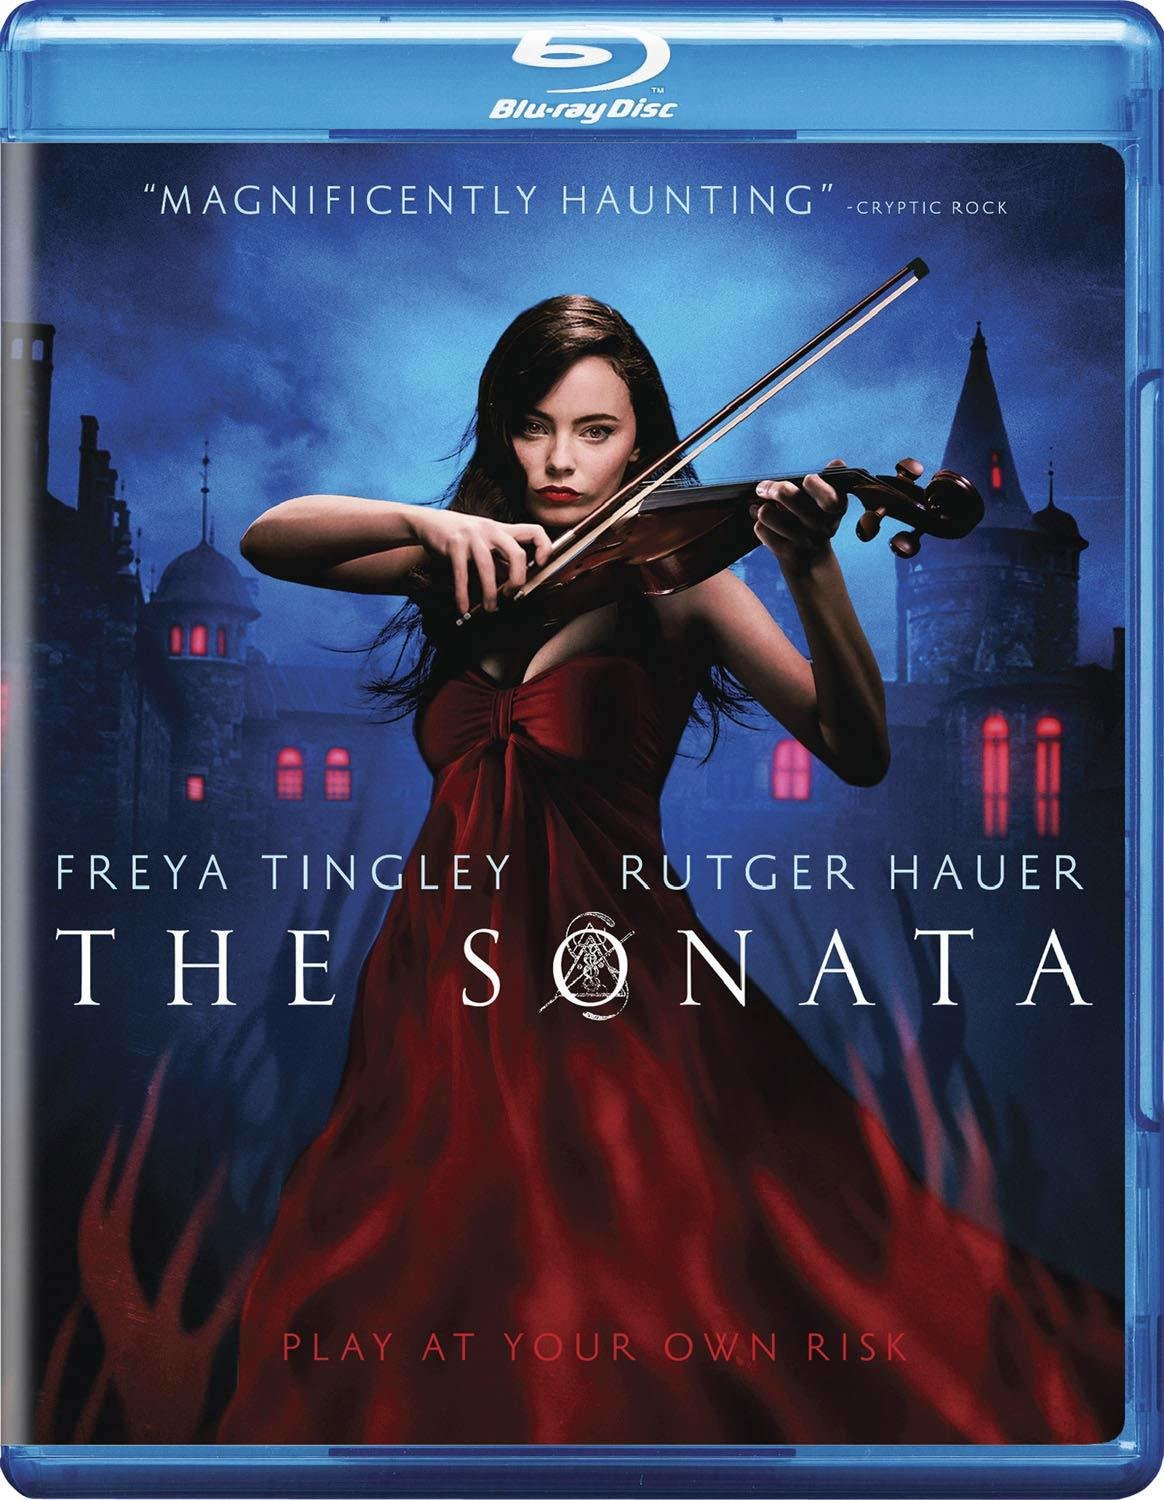 The Sonata (2018) poster image